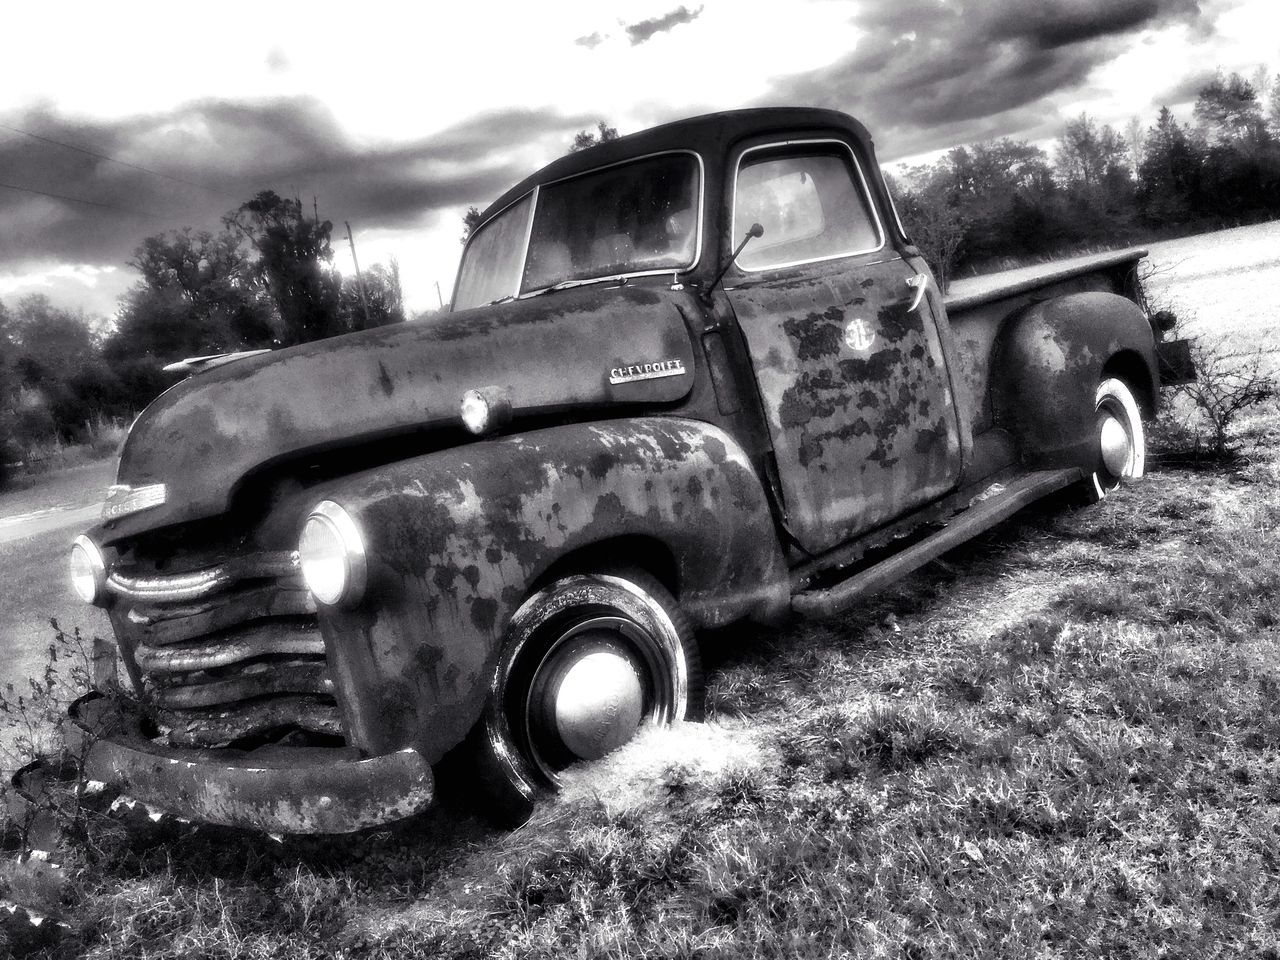 Vintage Auto in Black and White Rusty Autos Rusty Rust Never Sleeps Rust Antique Cars Old Car Old But Awesome Vintage❤ Car Vintage Cars Antique Car Automotive Photography Vintage Vehicles Antique Black And White Collection  Black And White Photography Black And White Vintage Oldie  Antiquecar Auto EyeEm Best Shots